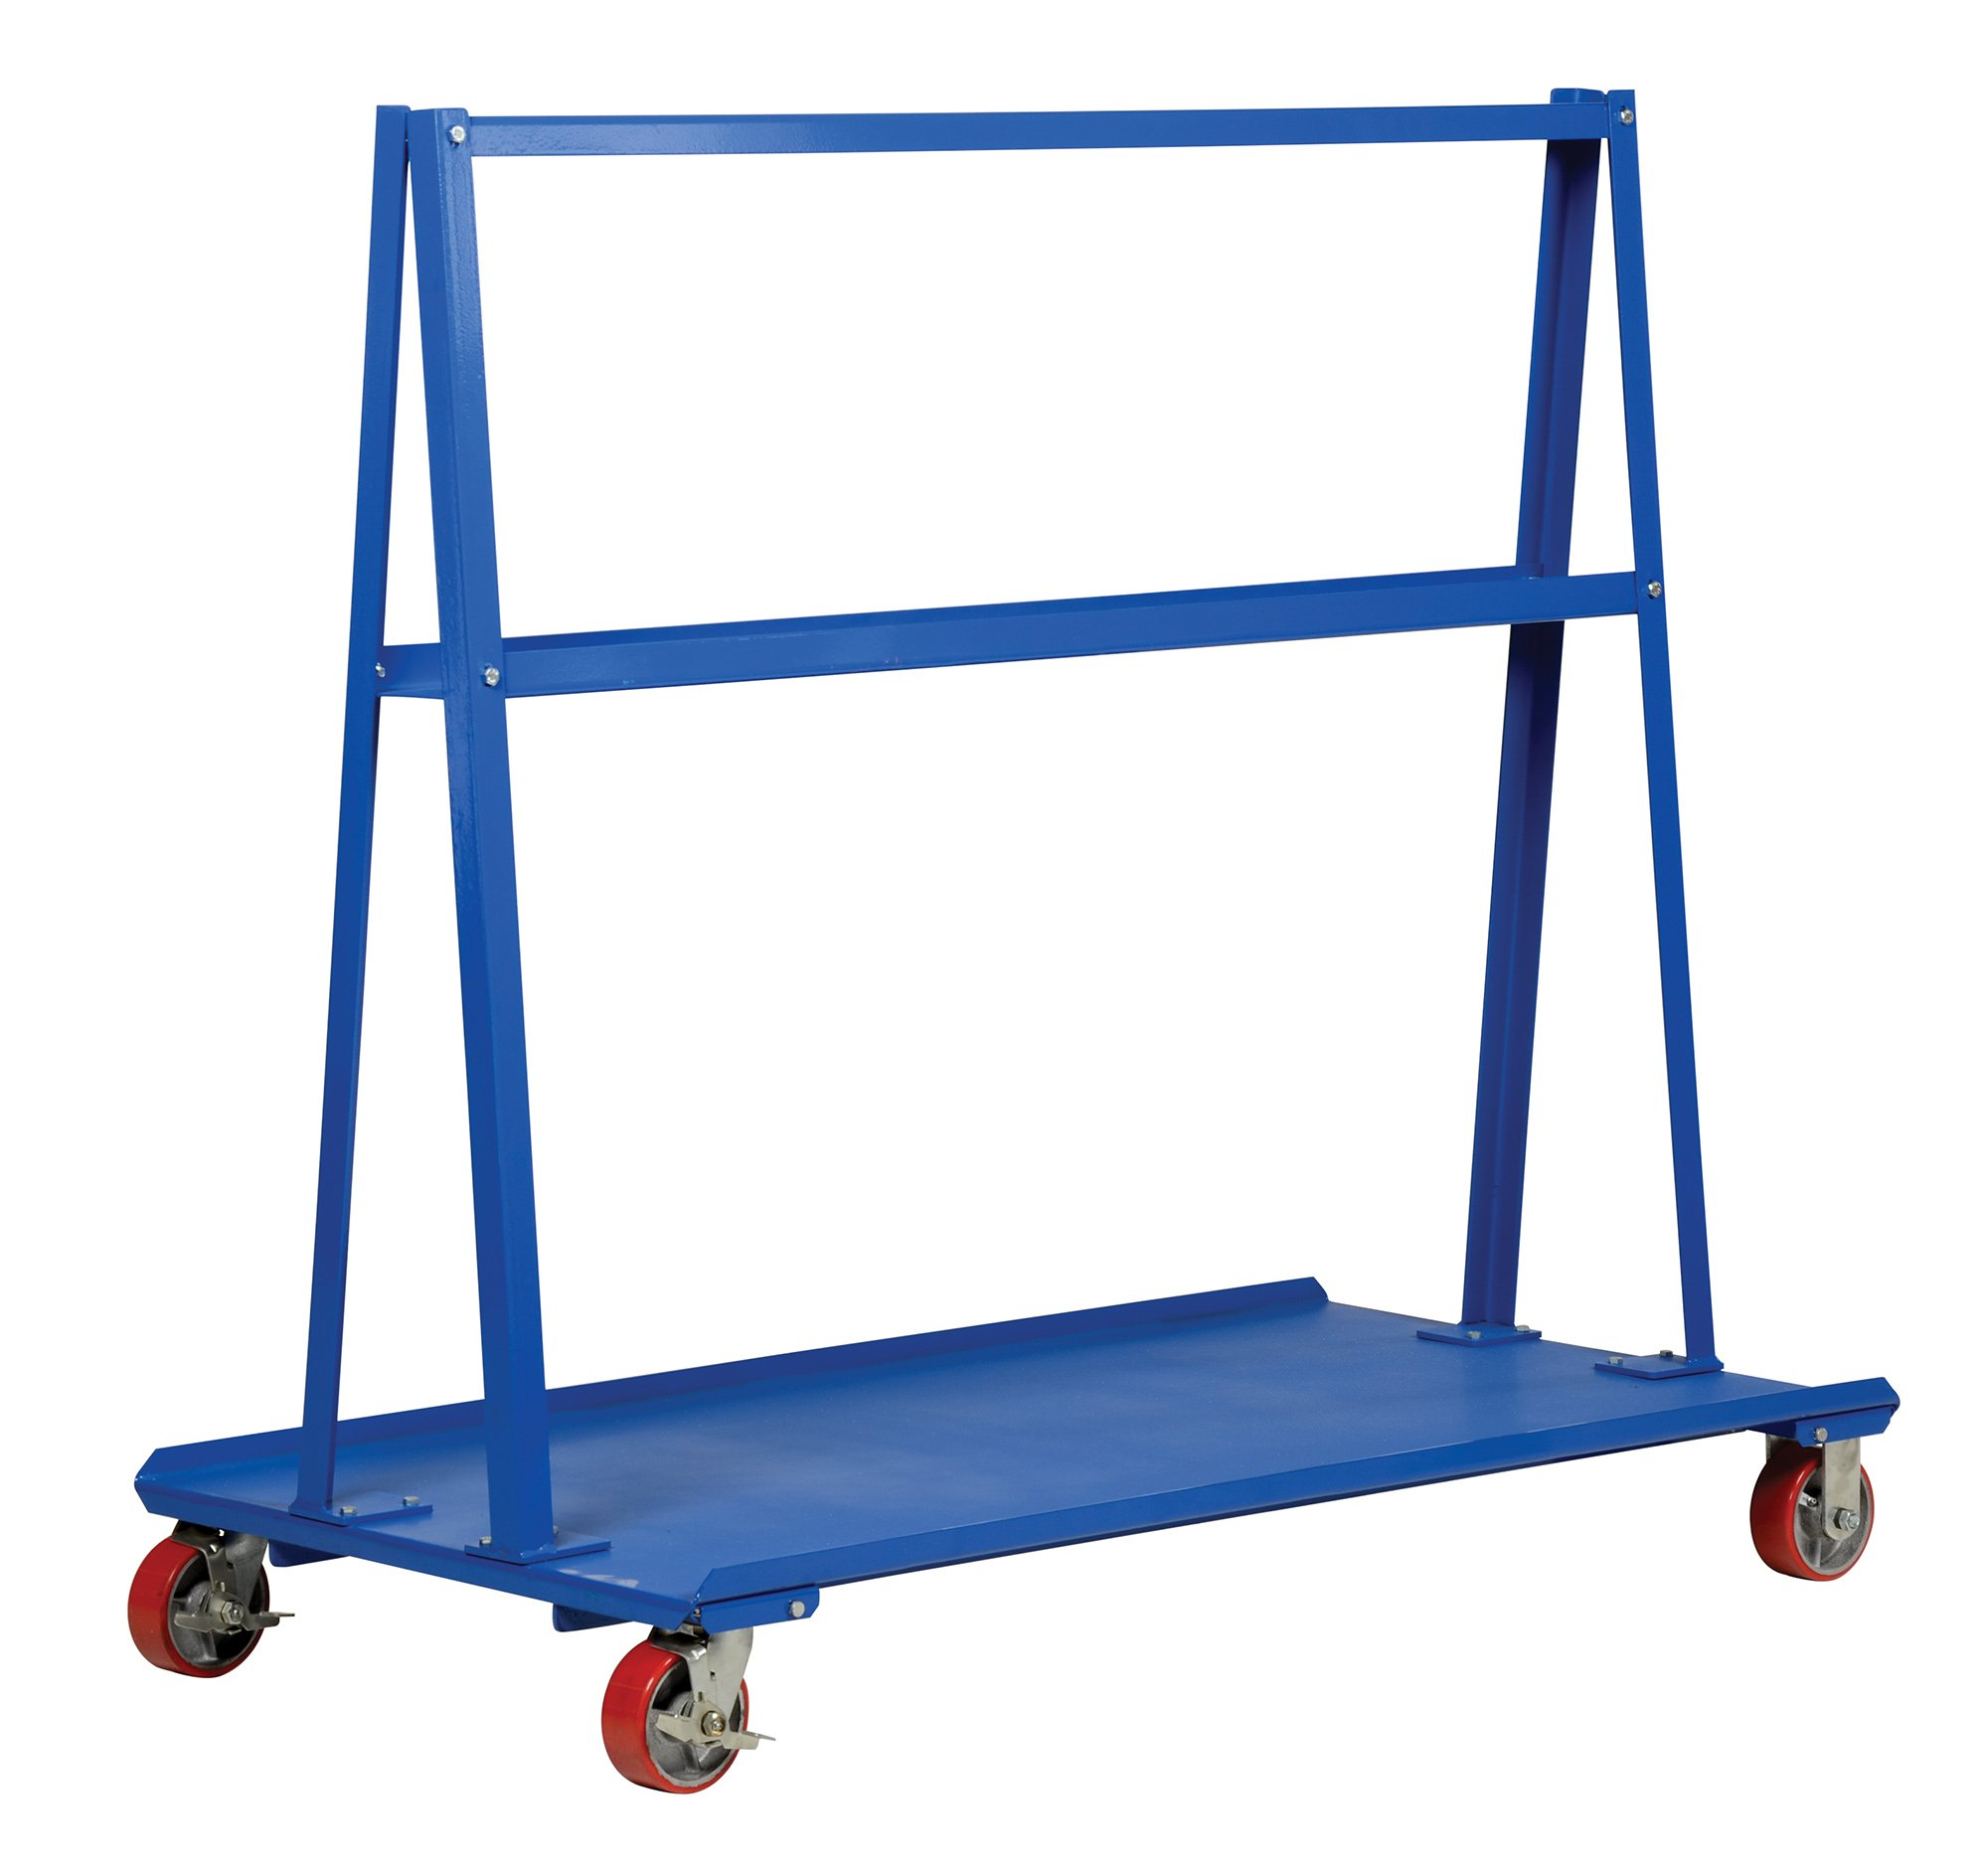 Vestil AF-3060 Frame Cart 2000 lb. Capacity, 30'' Width x 60'' Length x 56'' Height, 5'' x 2'' Poly On Steel Casters, Steel, Powdercoat Blue